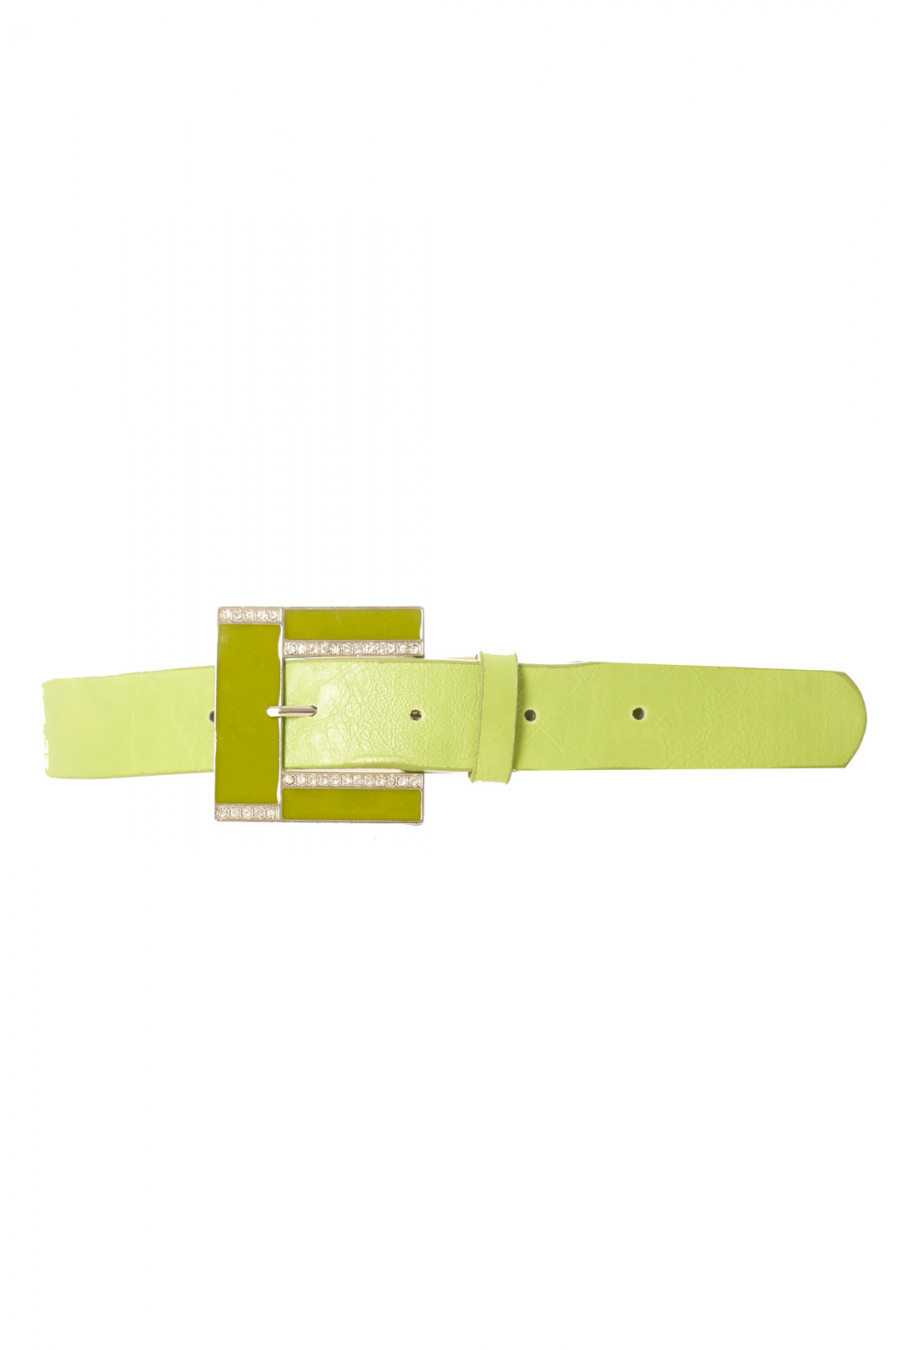 Green leather-effect belt with square buckle and rhinestones CE 726